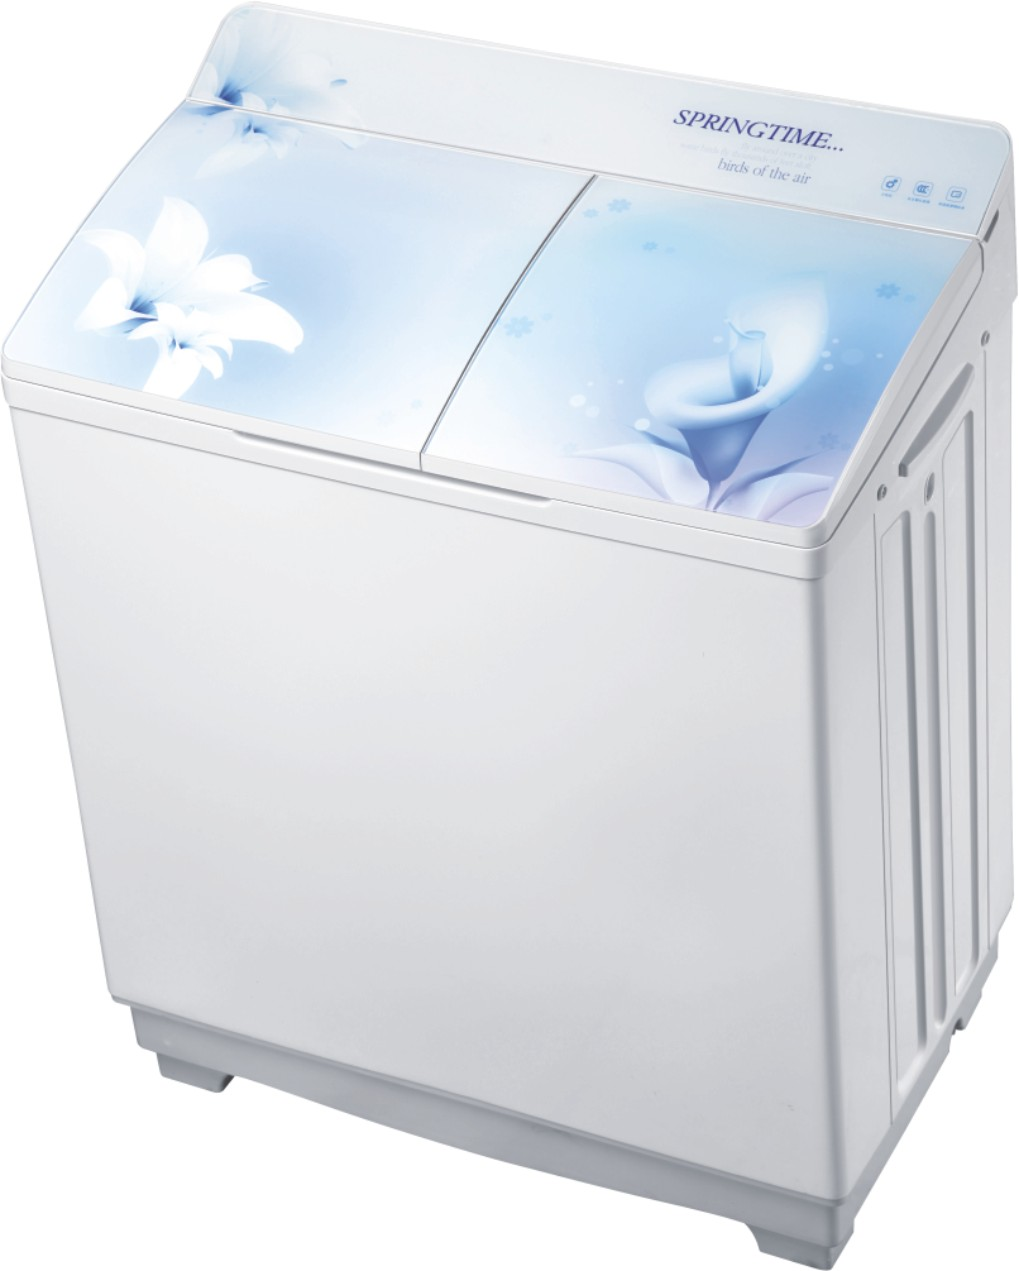 twin tub washing machine, XPB95-8950S( Arc tempered glass cover)